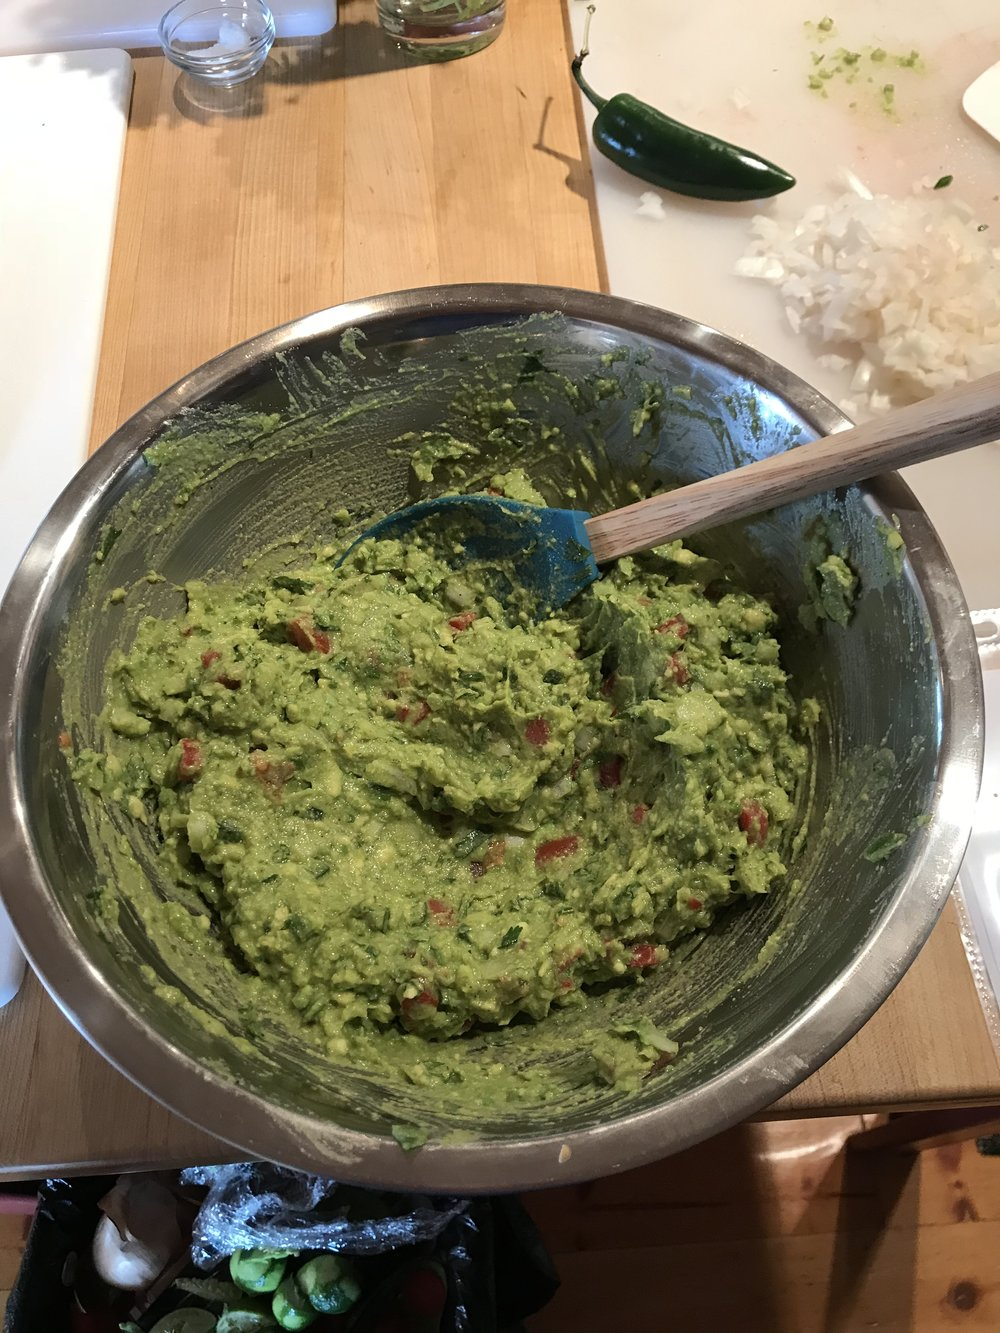 The guacamole that I made as part of the lunch.